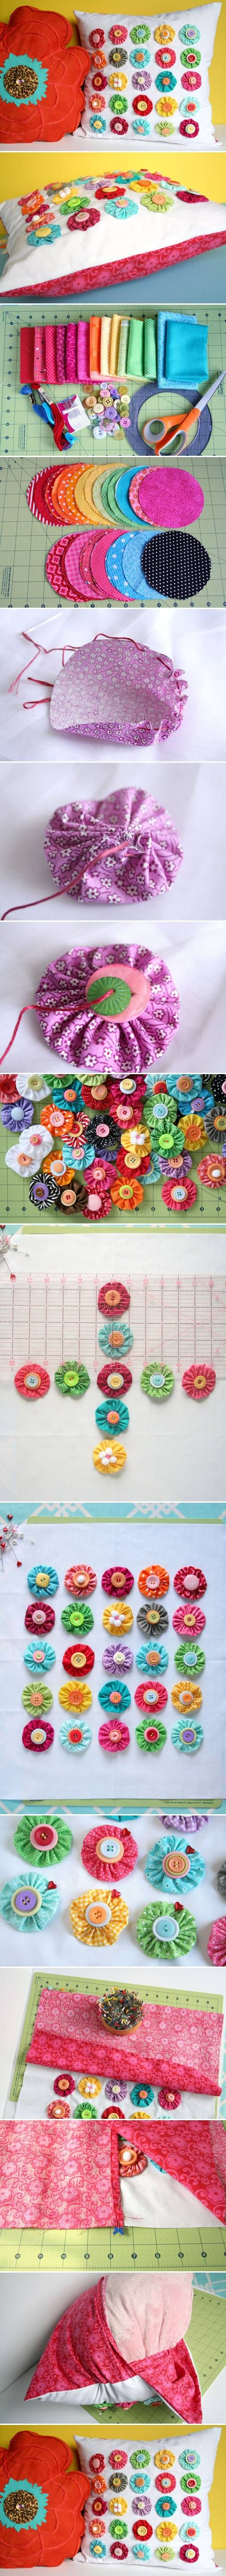 How To Make Fabric Decorative Flowers step by step DIY tutorial instructions